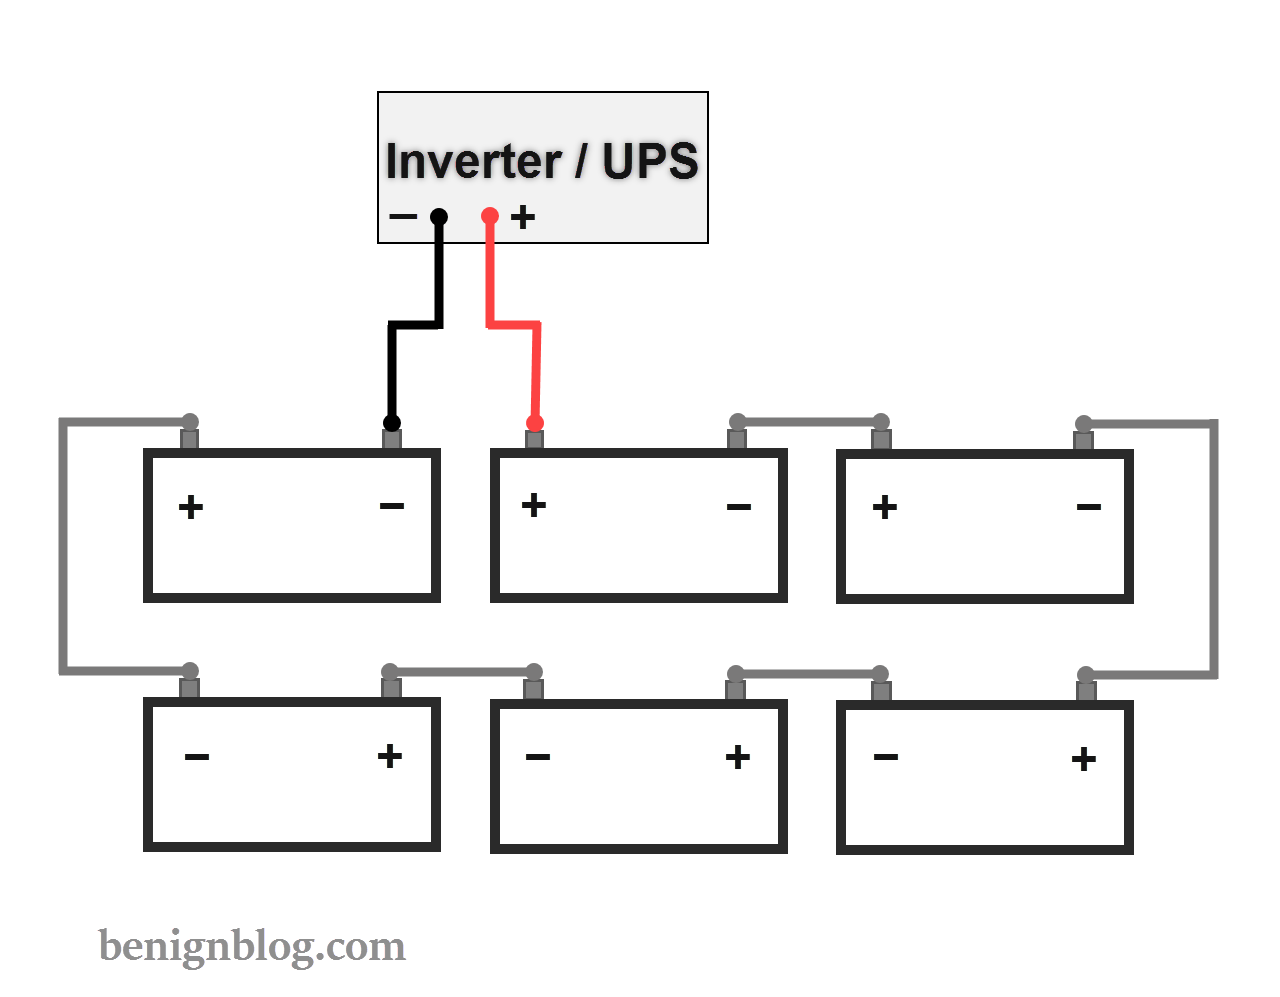 how to connect 2 4 6 8 10 12 batteries in series with power inverter rh benignblog com A Simple Battery Circuit Diagram Battery Symbol Circuit Diagram